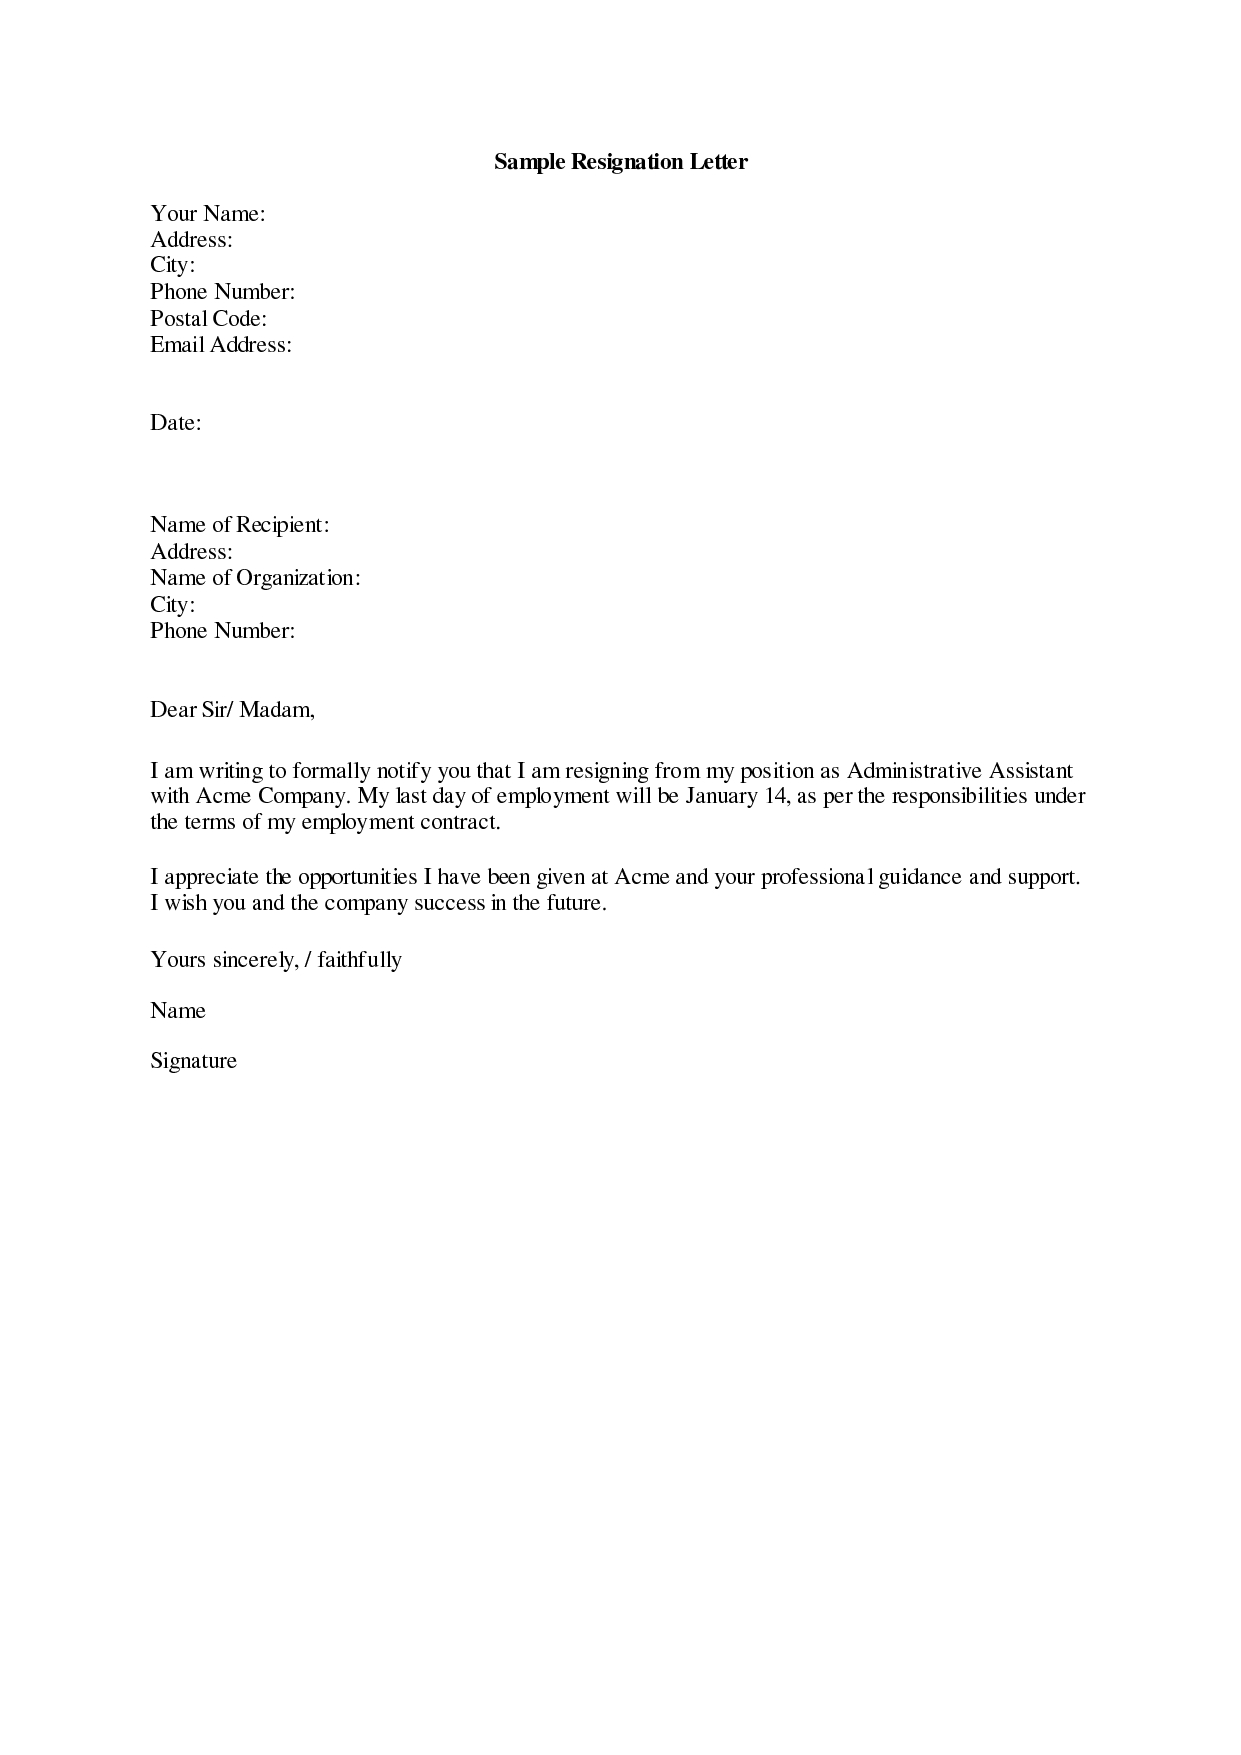 Retirement Resignation Letter Template Free - Resignation Letter Sample 19 Letter Of Resignation